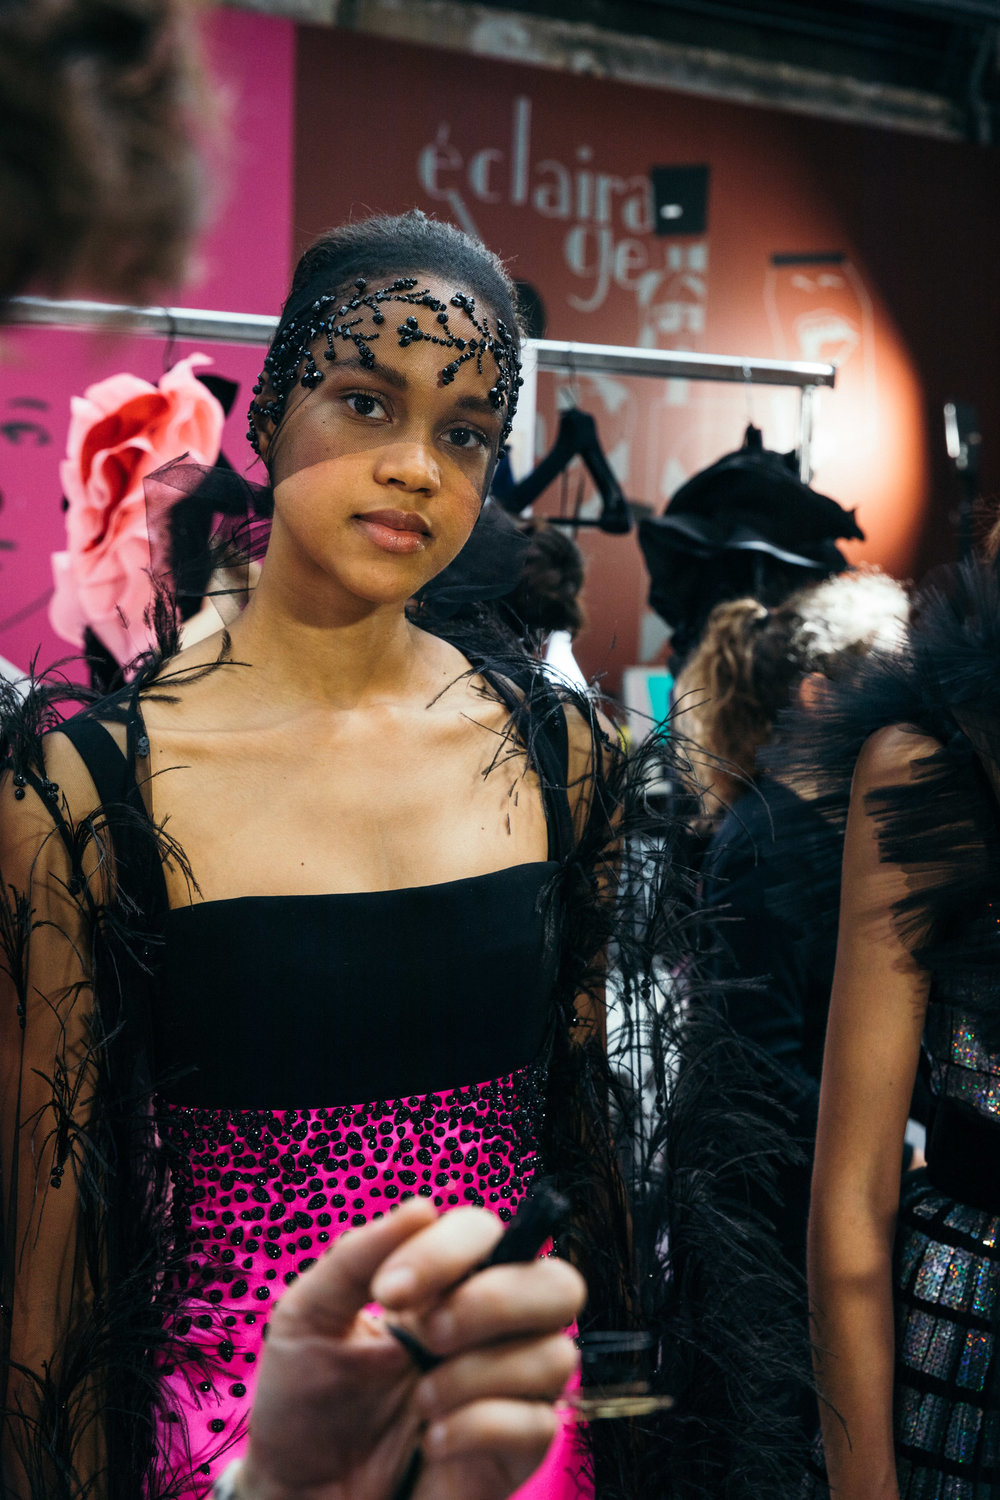 Georges-Chakra-backstage-Paris-Fashion-Week-Fall1819_by_Alexis_Breugelmans_180703_002.jpg